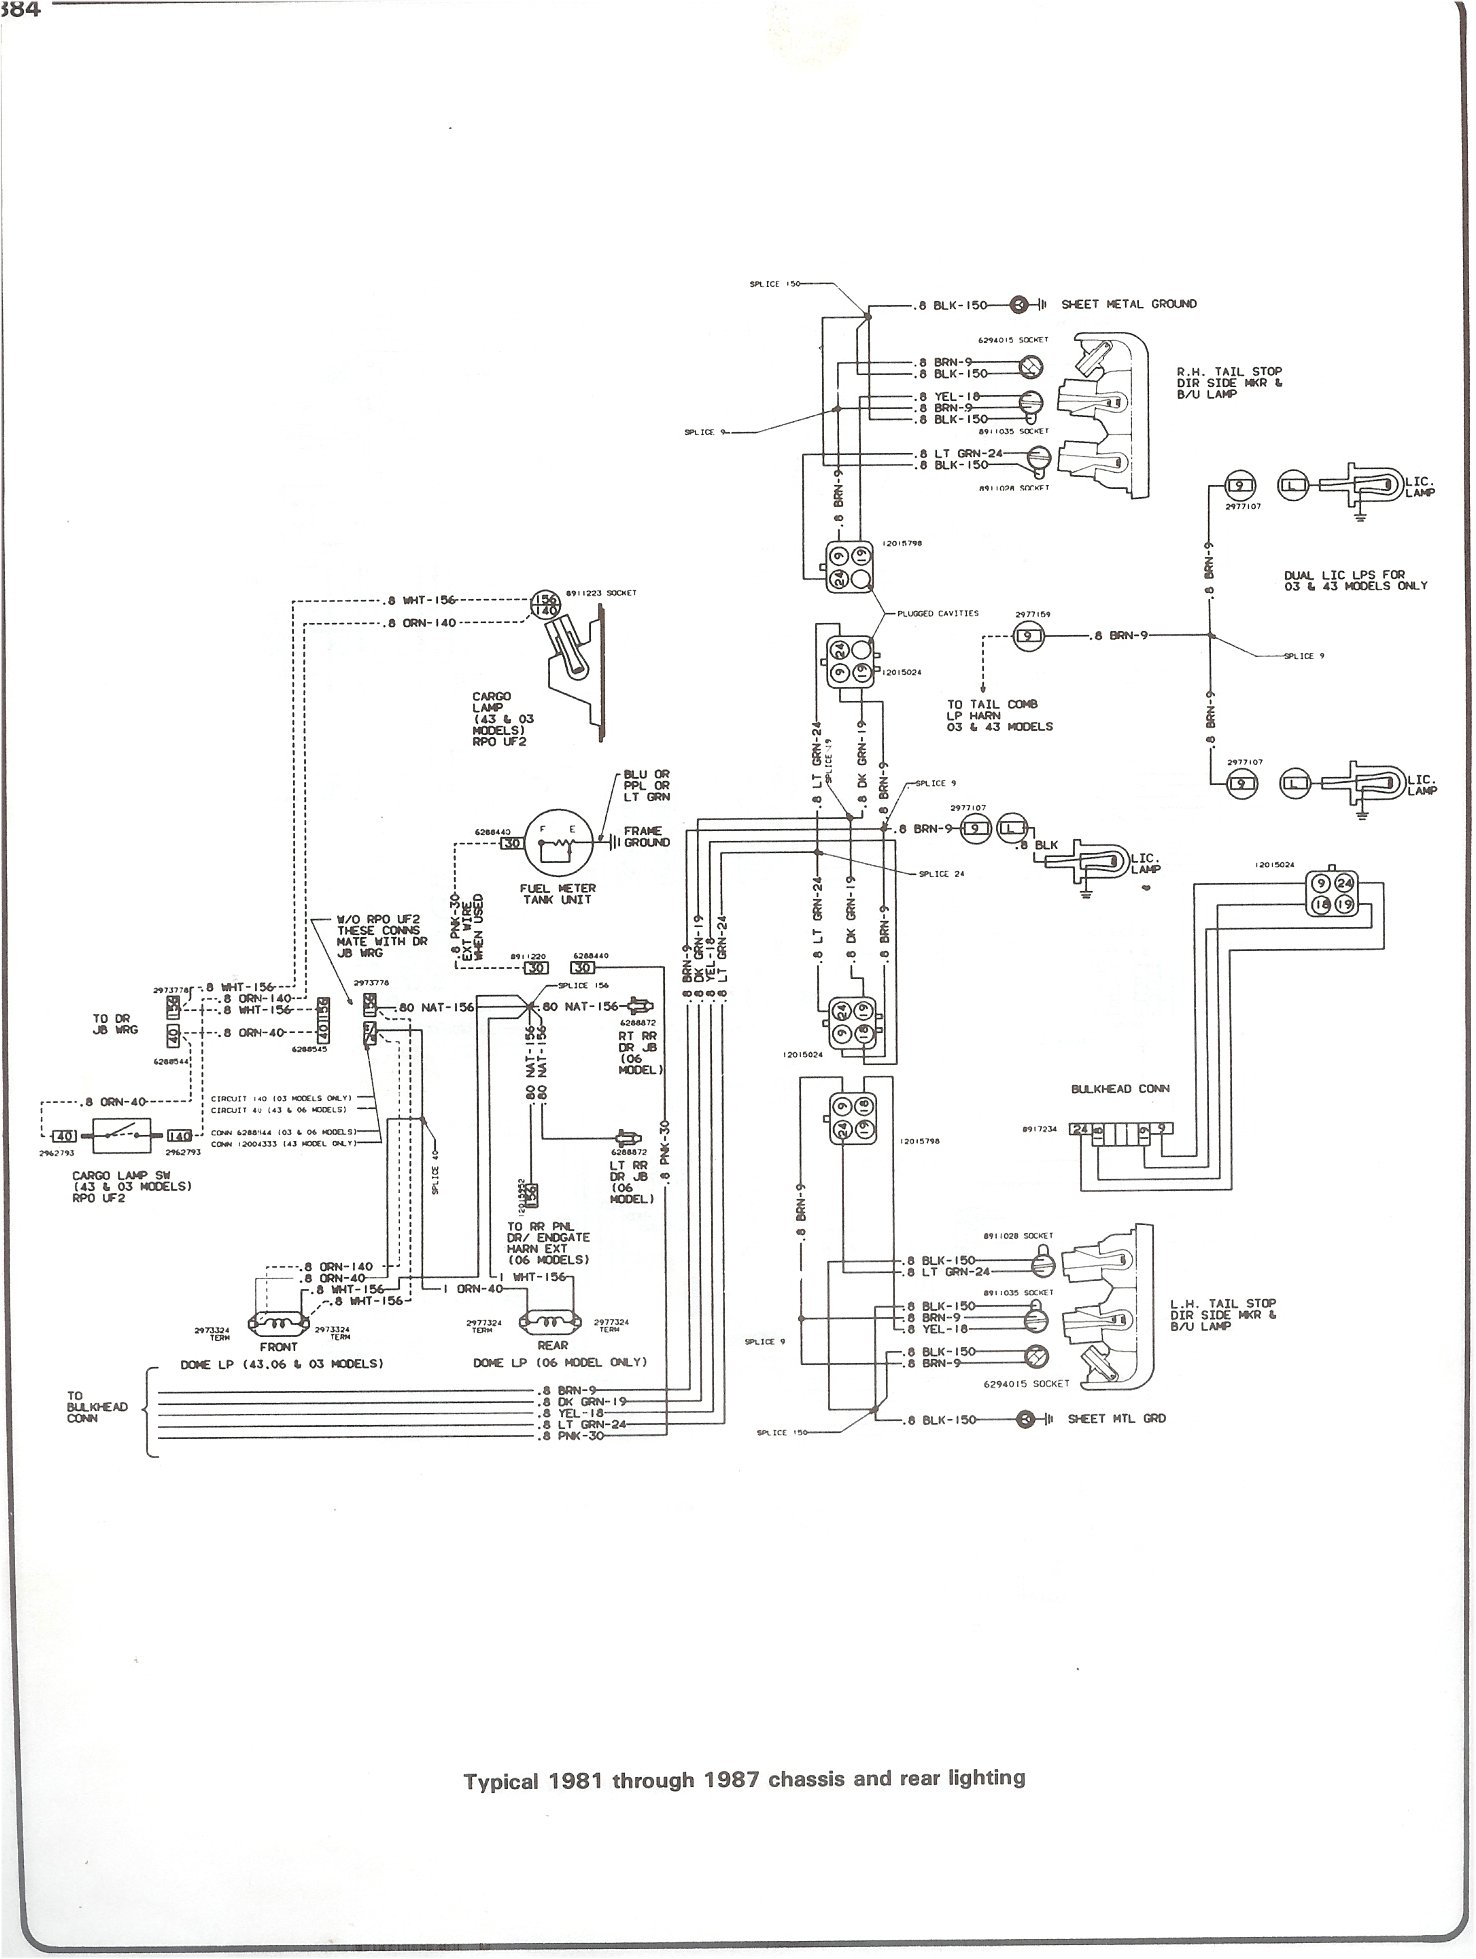 81 87_chass_rr_light brake light switch wiring diagram? blazer forum chevy blazer Diagram Panel Wiring Cessnainstrument at eliteediting.co